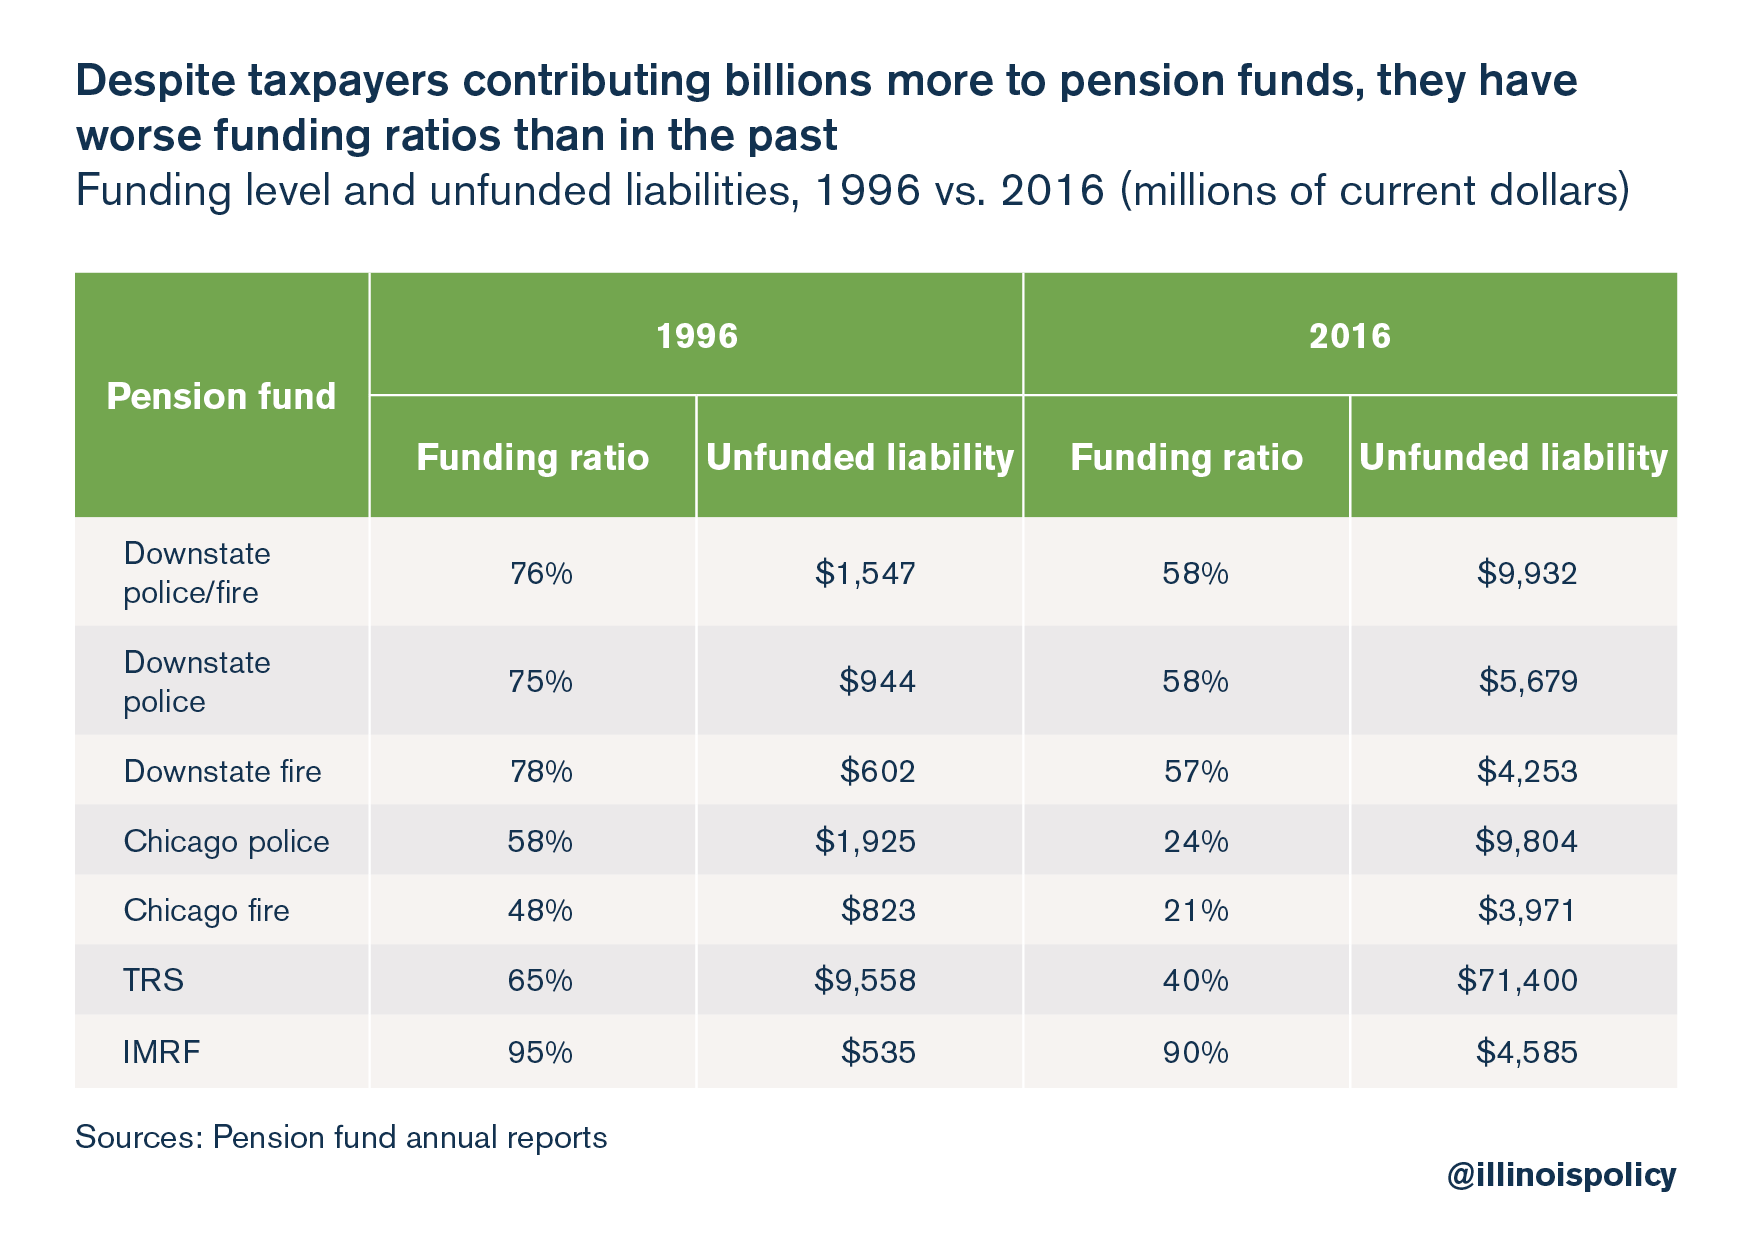 Despite taxpayers contributing billions more to pension funds, they have worse funding ratios than in the past